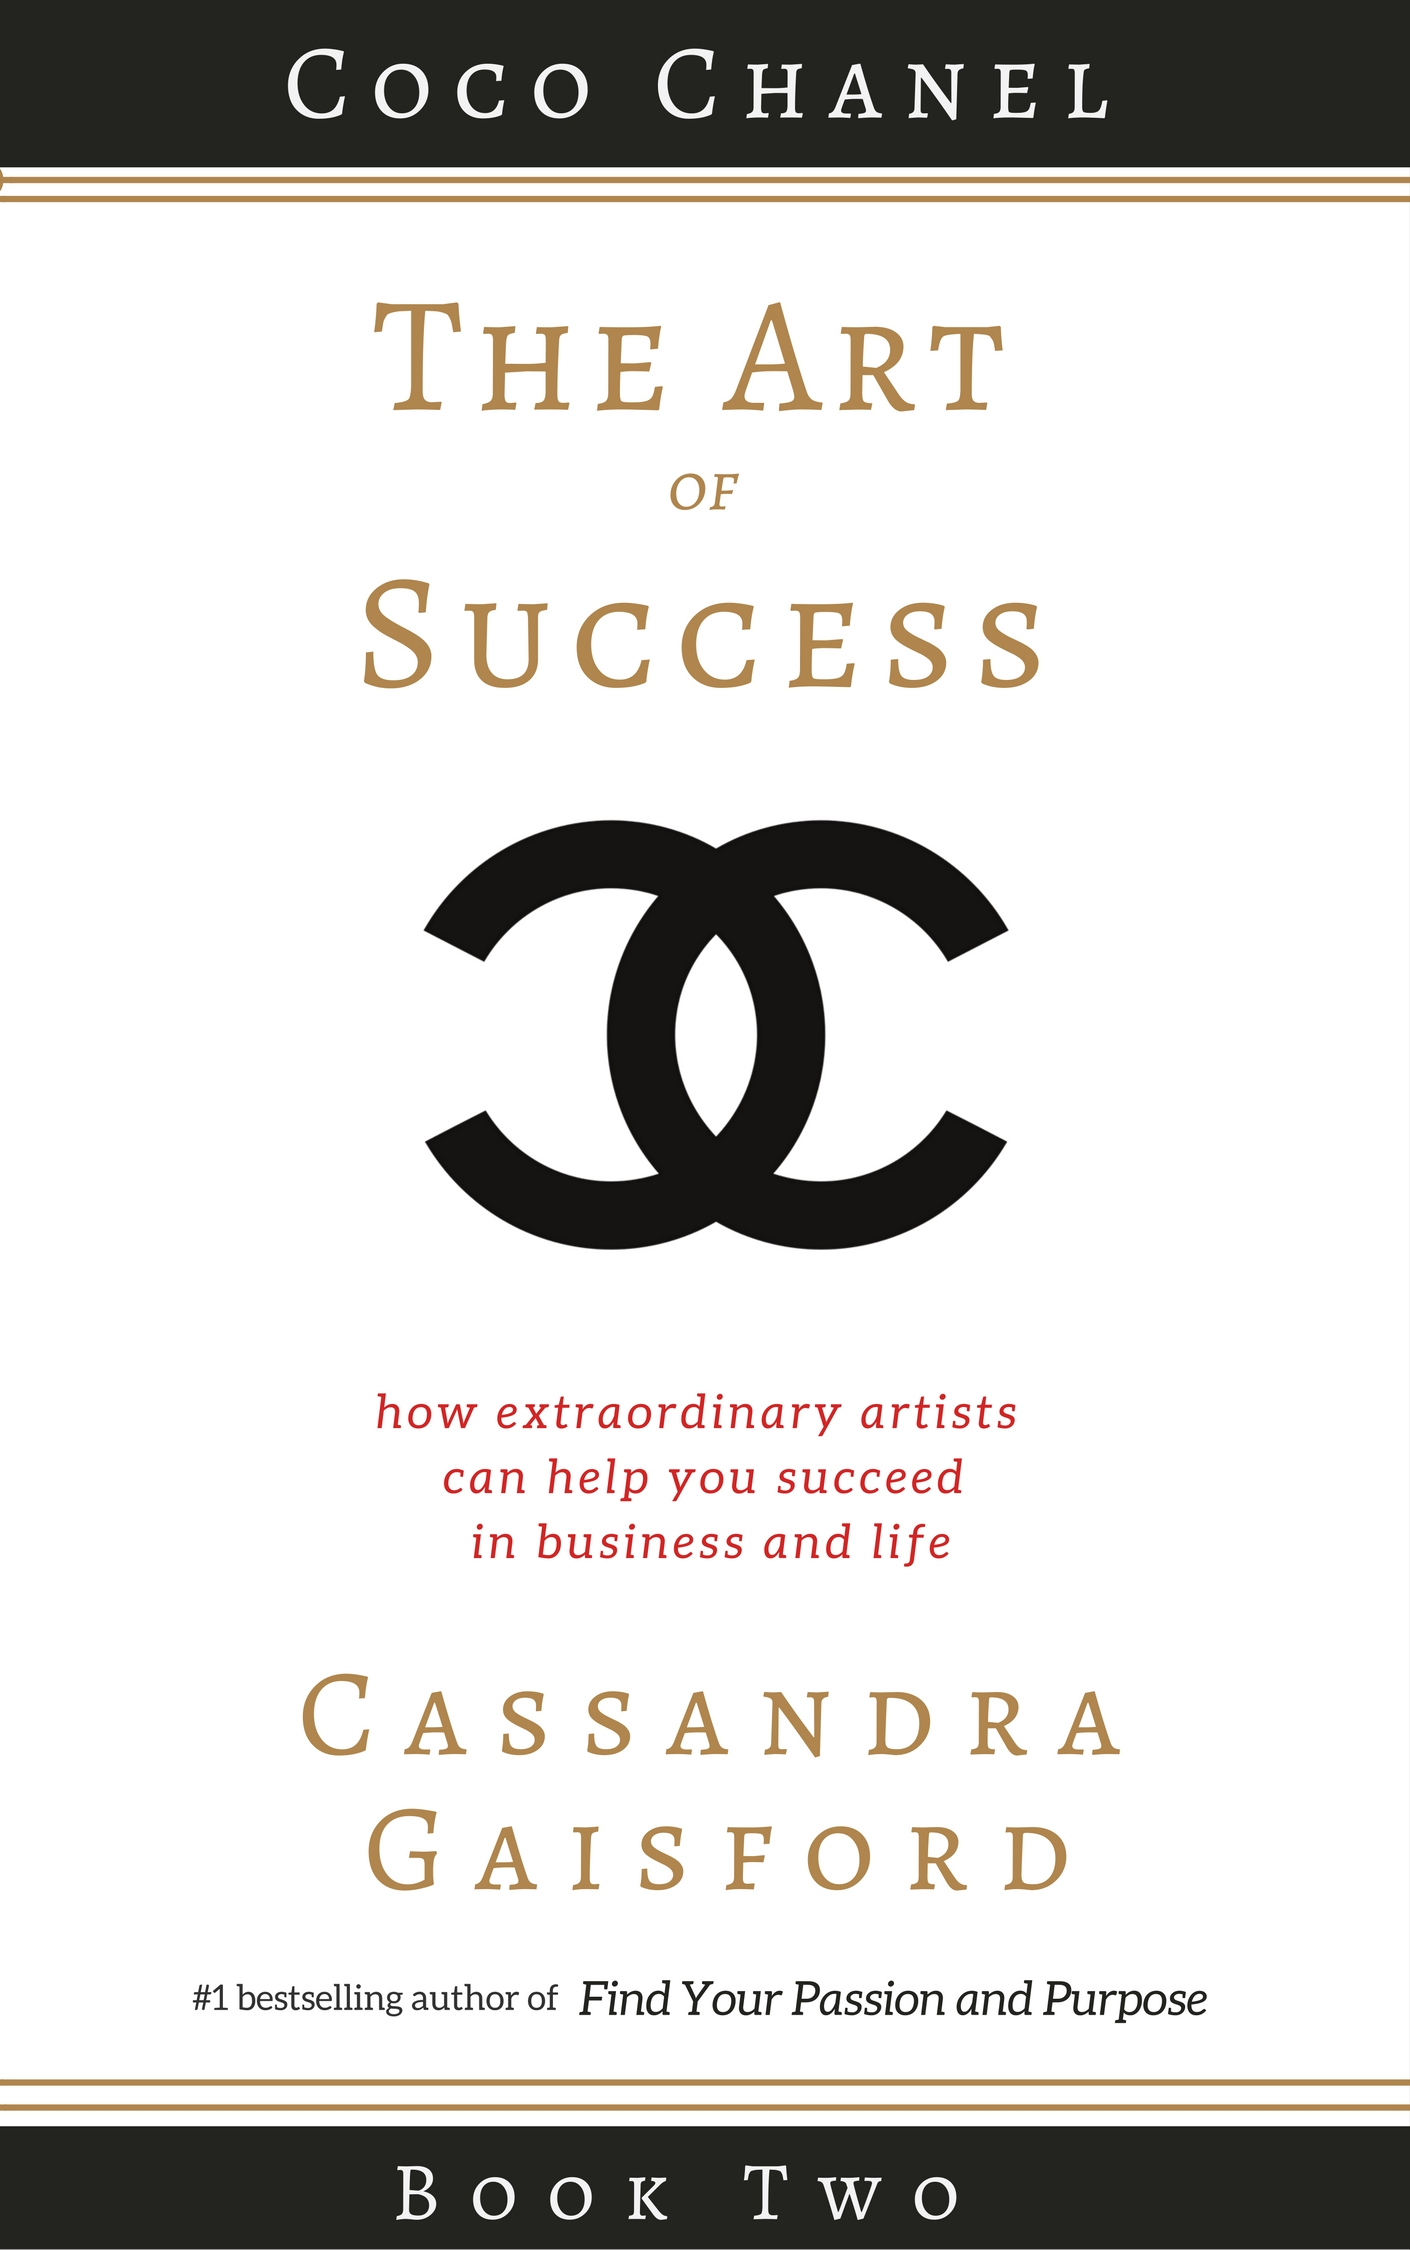 """the success story of coco chanel The preferred narrative of chanel biographers is often a rags-to-riches story full of paris glamor and paramour the key to garelick's success as a chanel biographer is her hominine treatment of her subject: """"to discover the historical,"""" she writes, """"sometimes we must look to the personal"""" history rarely."""